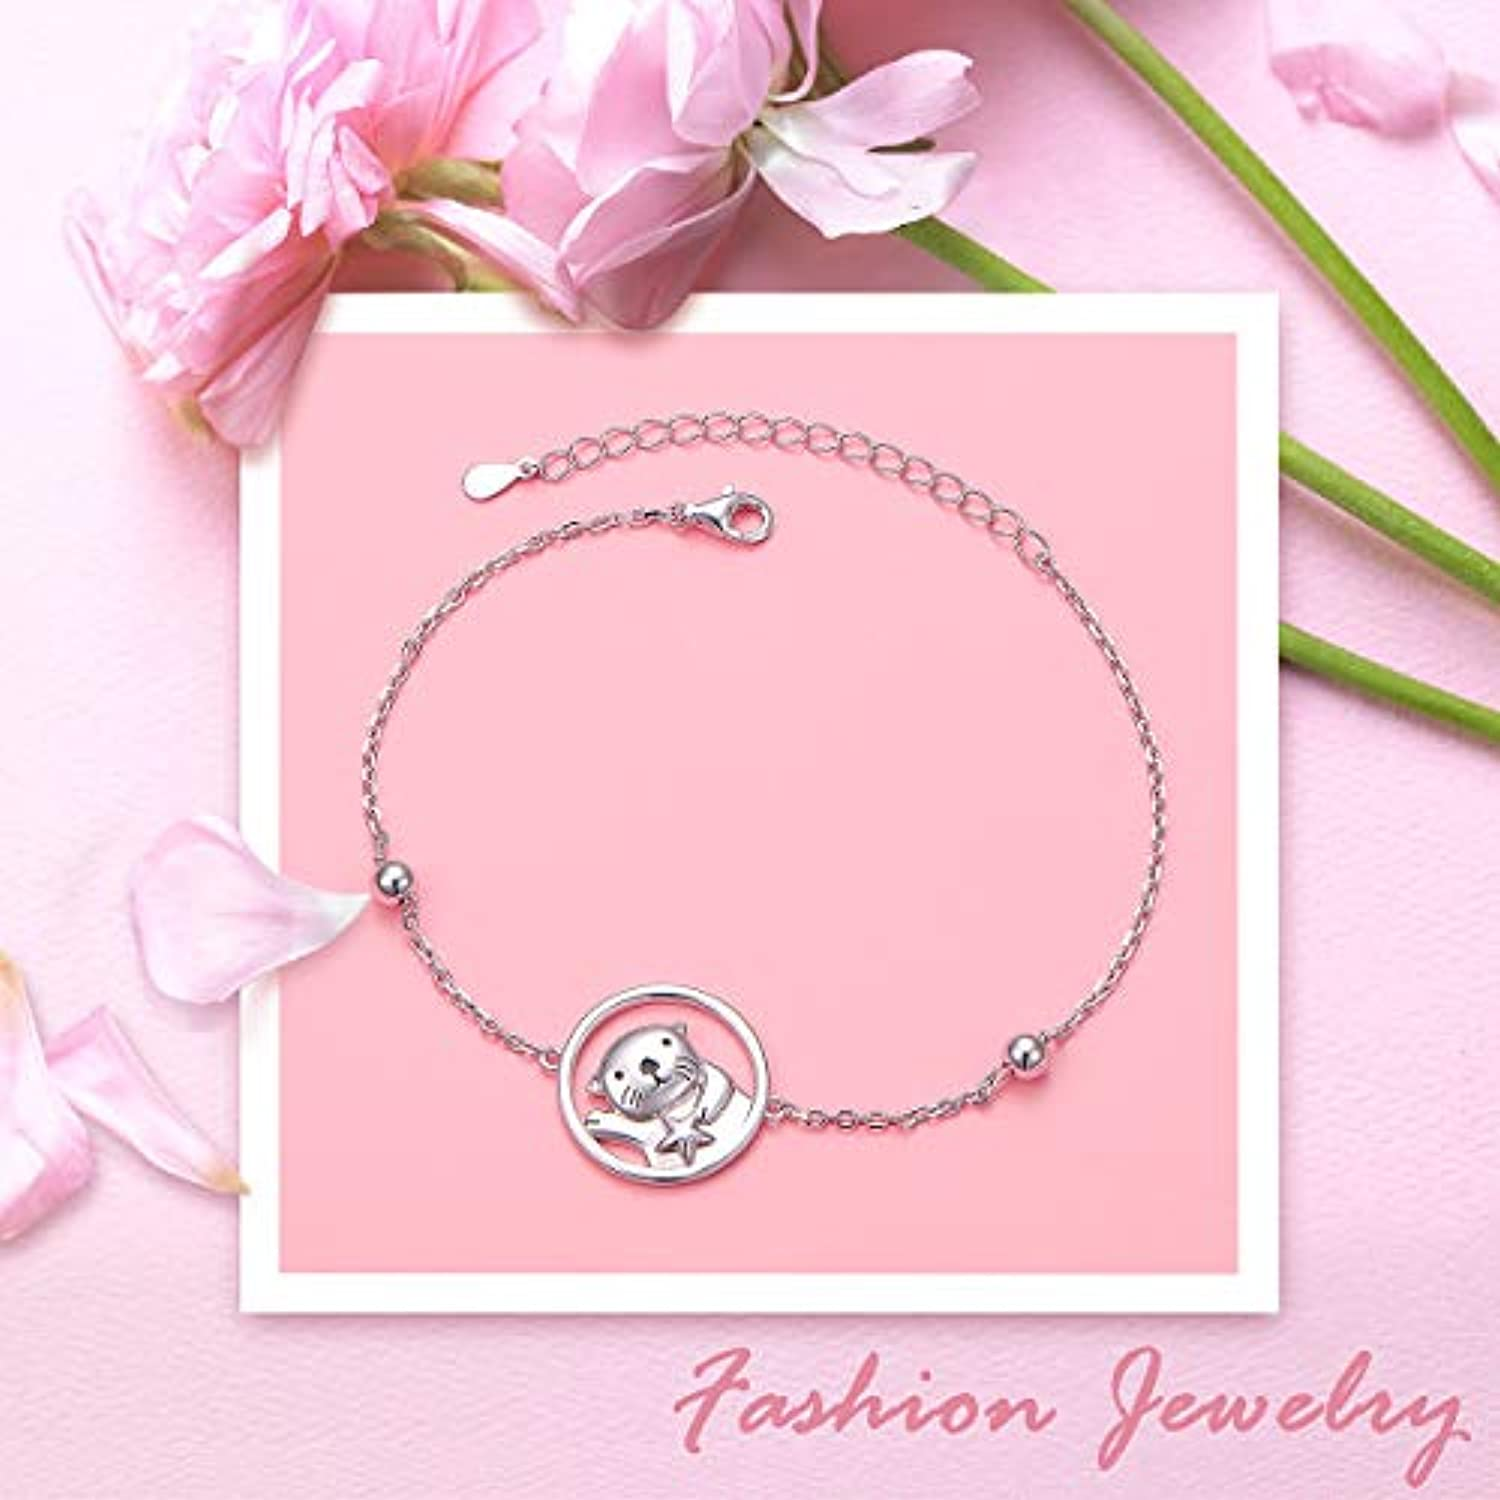 925 Sterling Silver Cute Animal Sea Otter Bracelet for Women Teen Girls Birthday Gifts